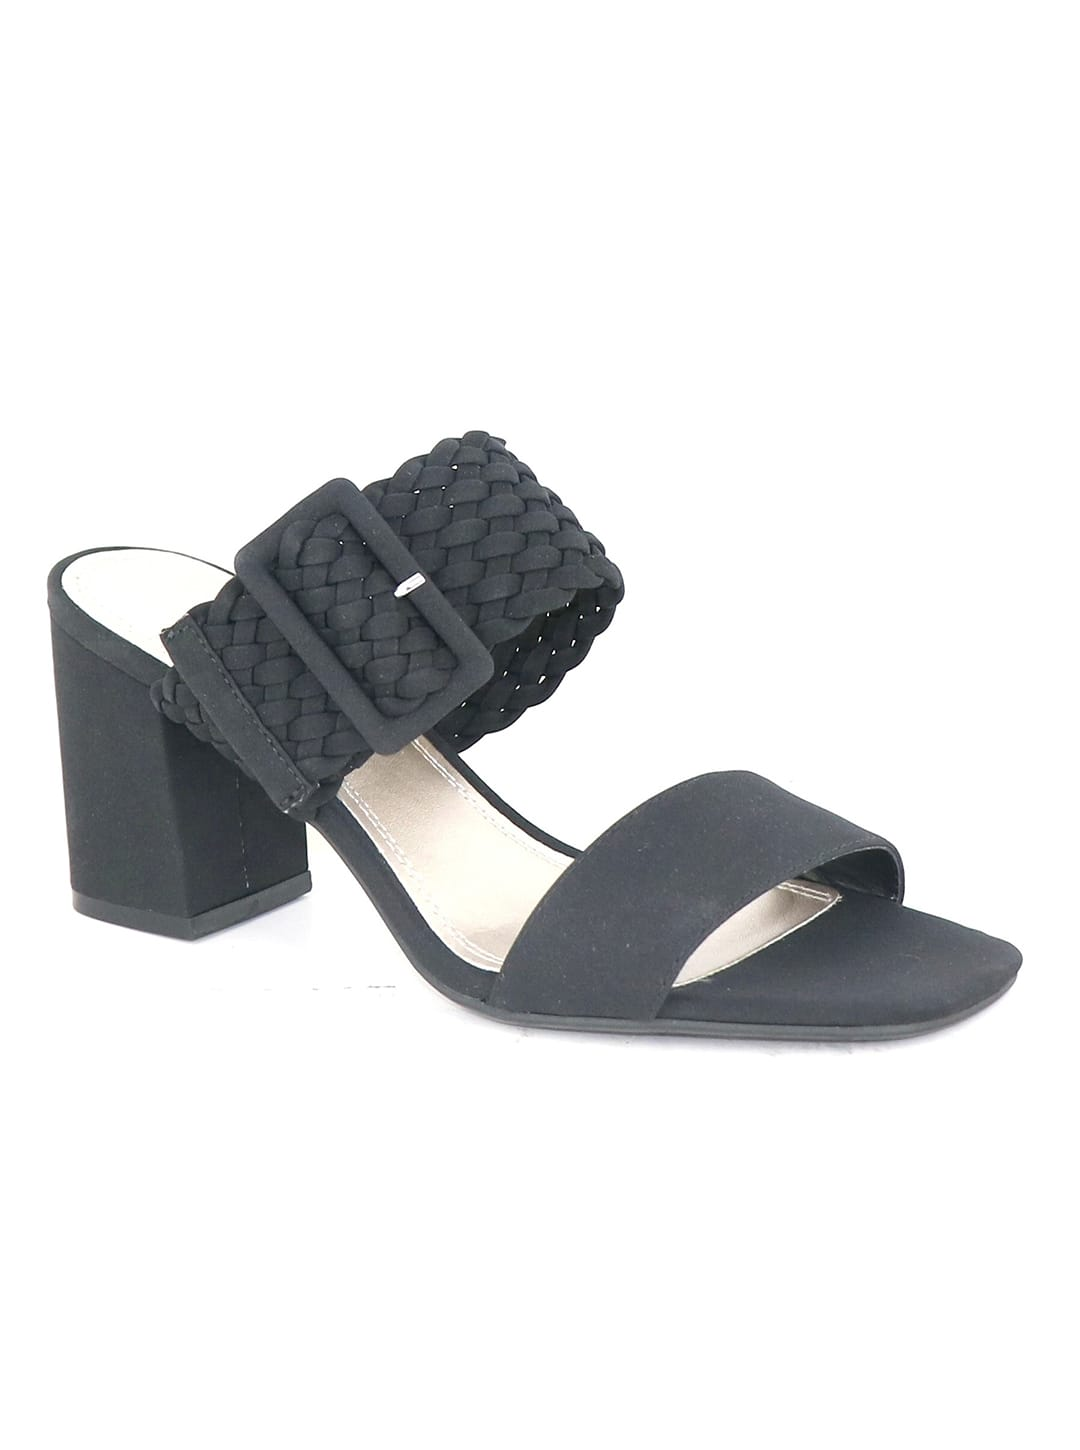 Impo Vlossom Block Heel Sandals - black - Front